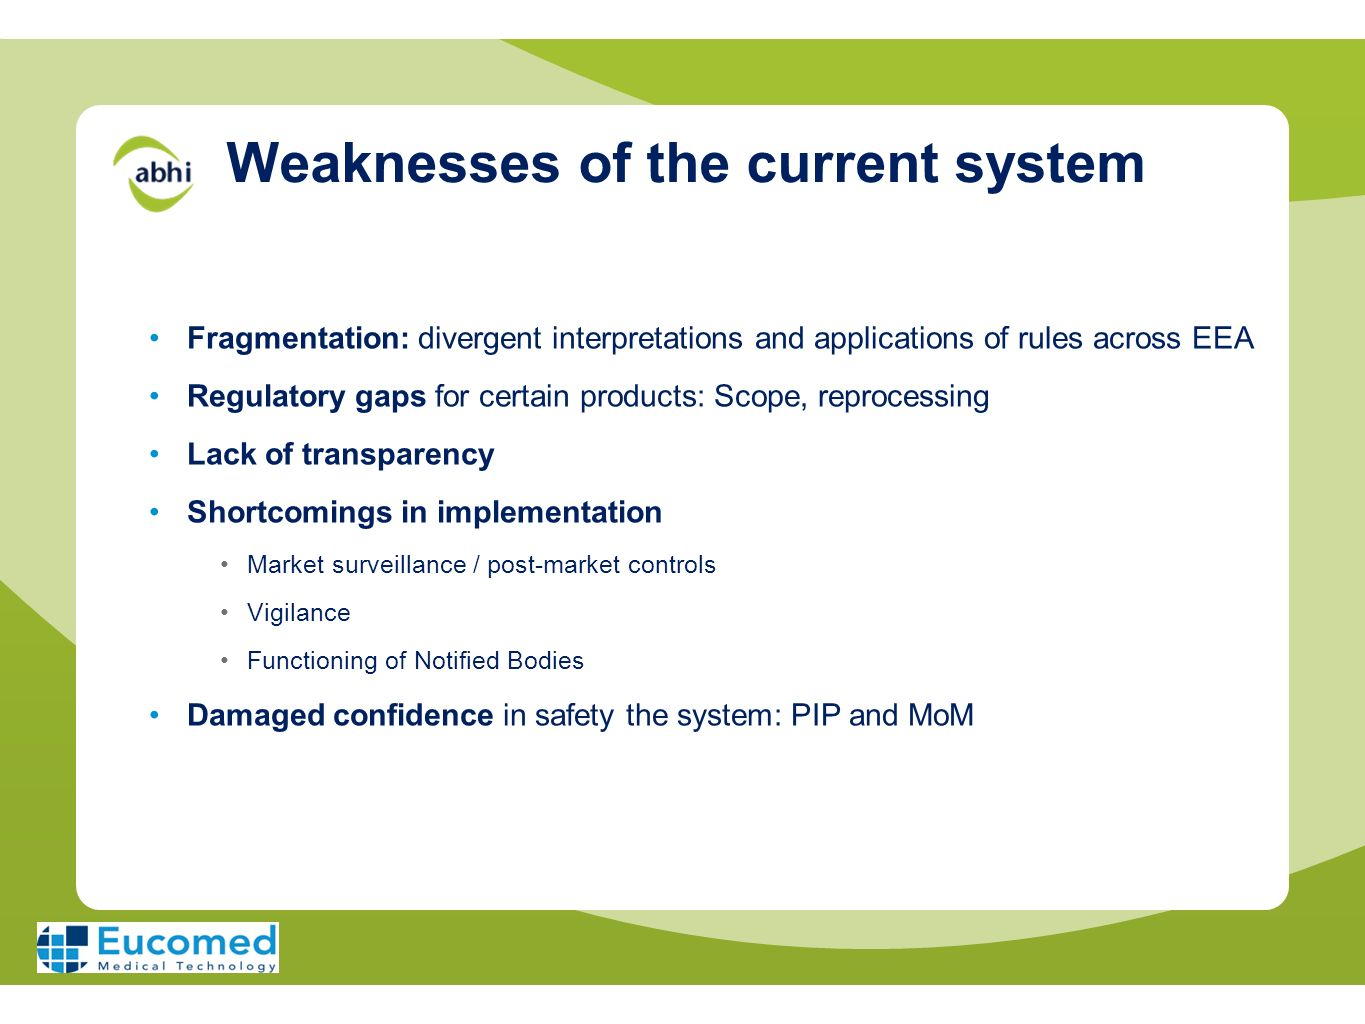 Weaknesses of the current system